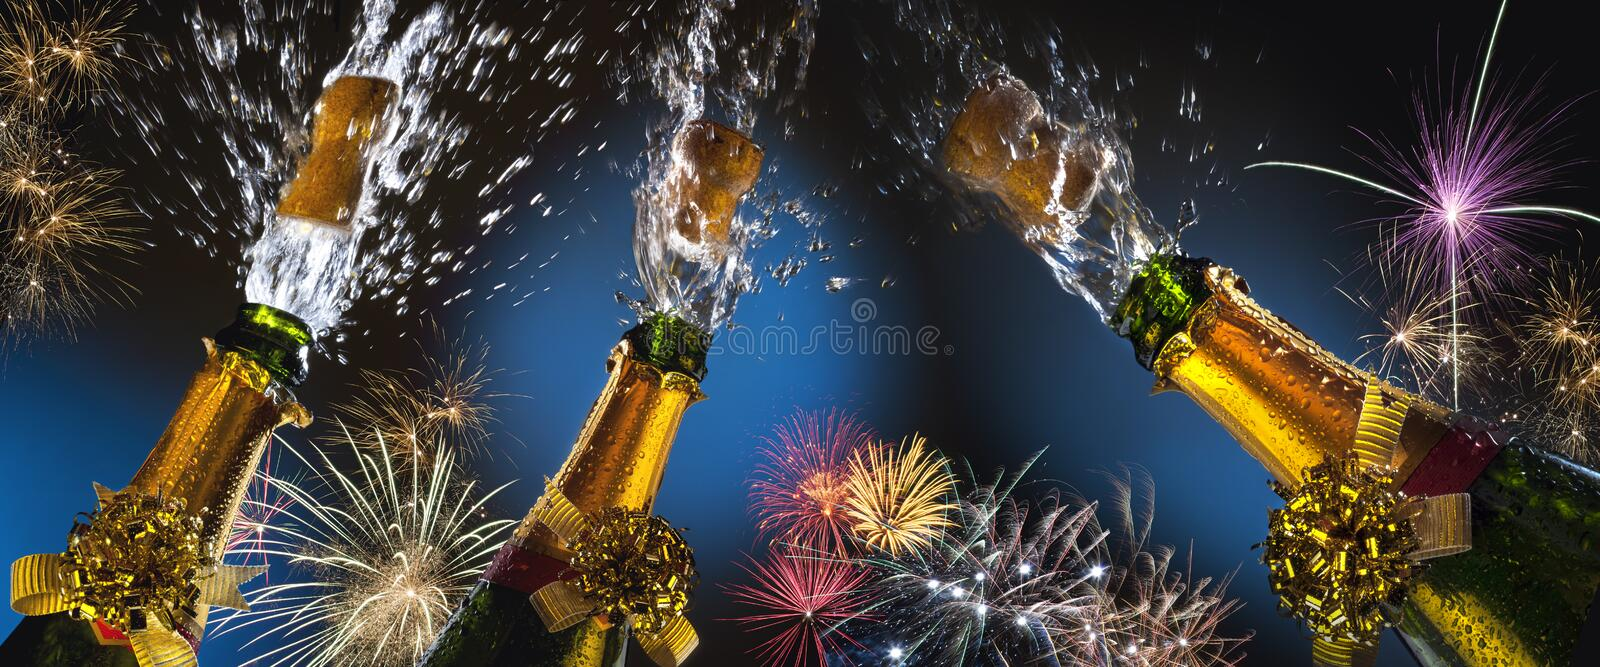 Celebration - Fizz and Fireworks royalty free stock images